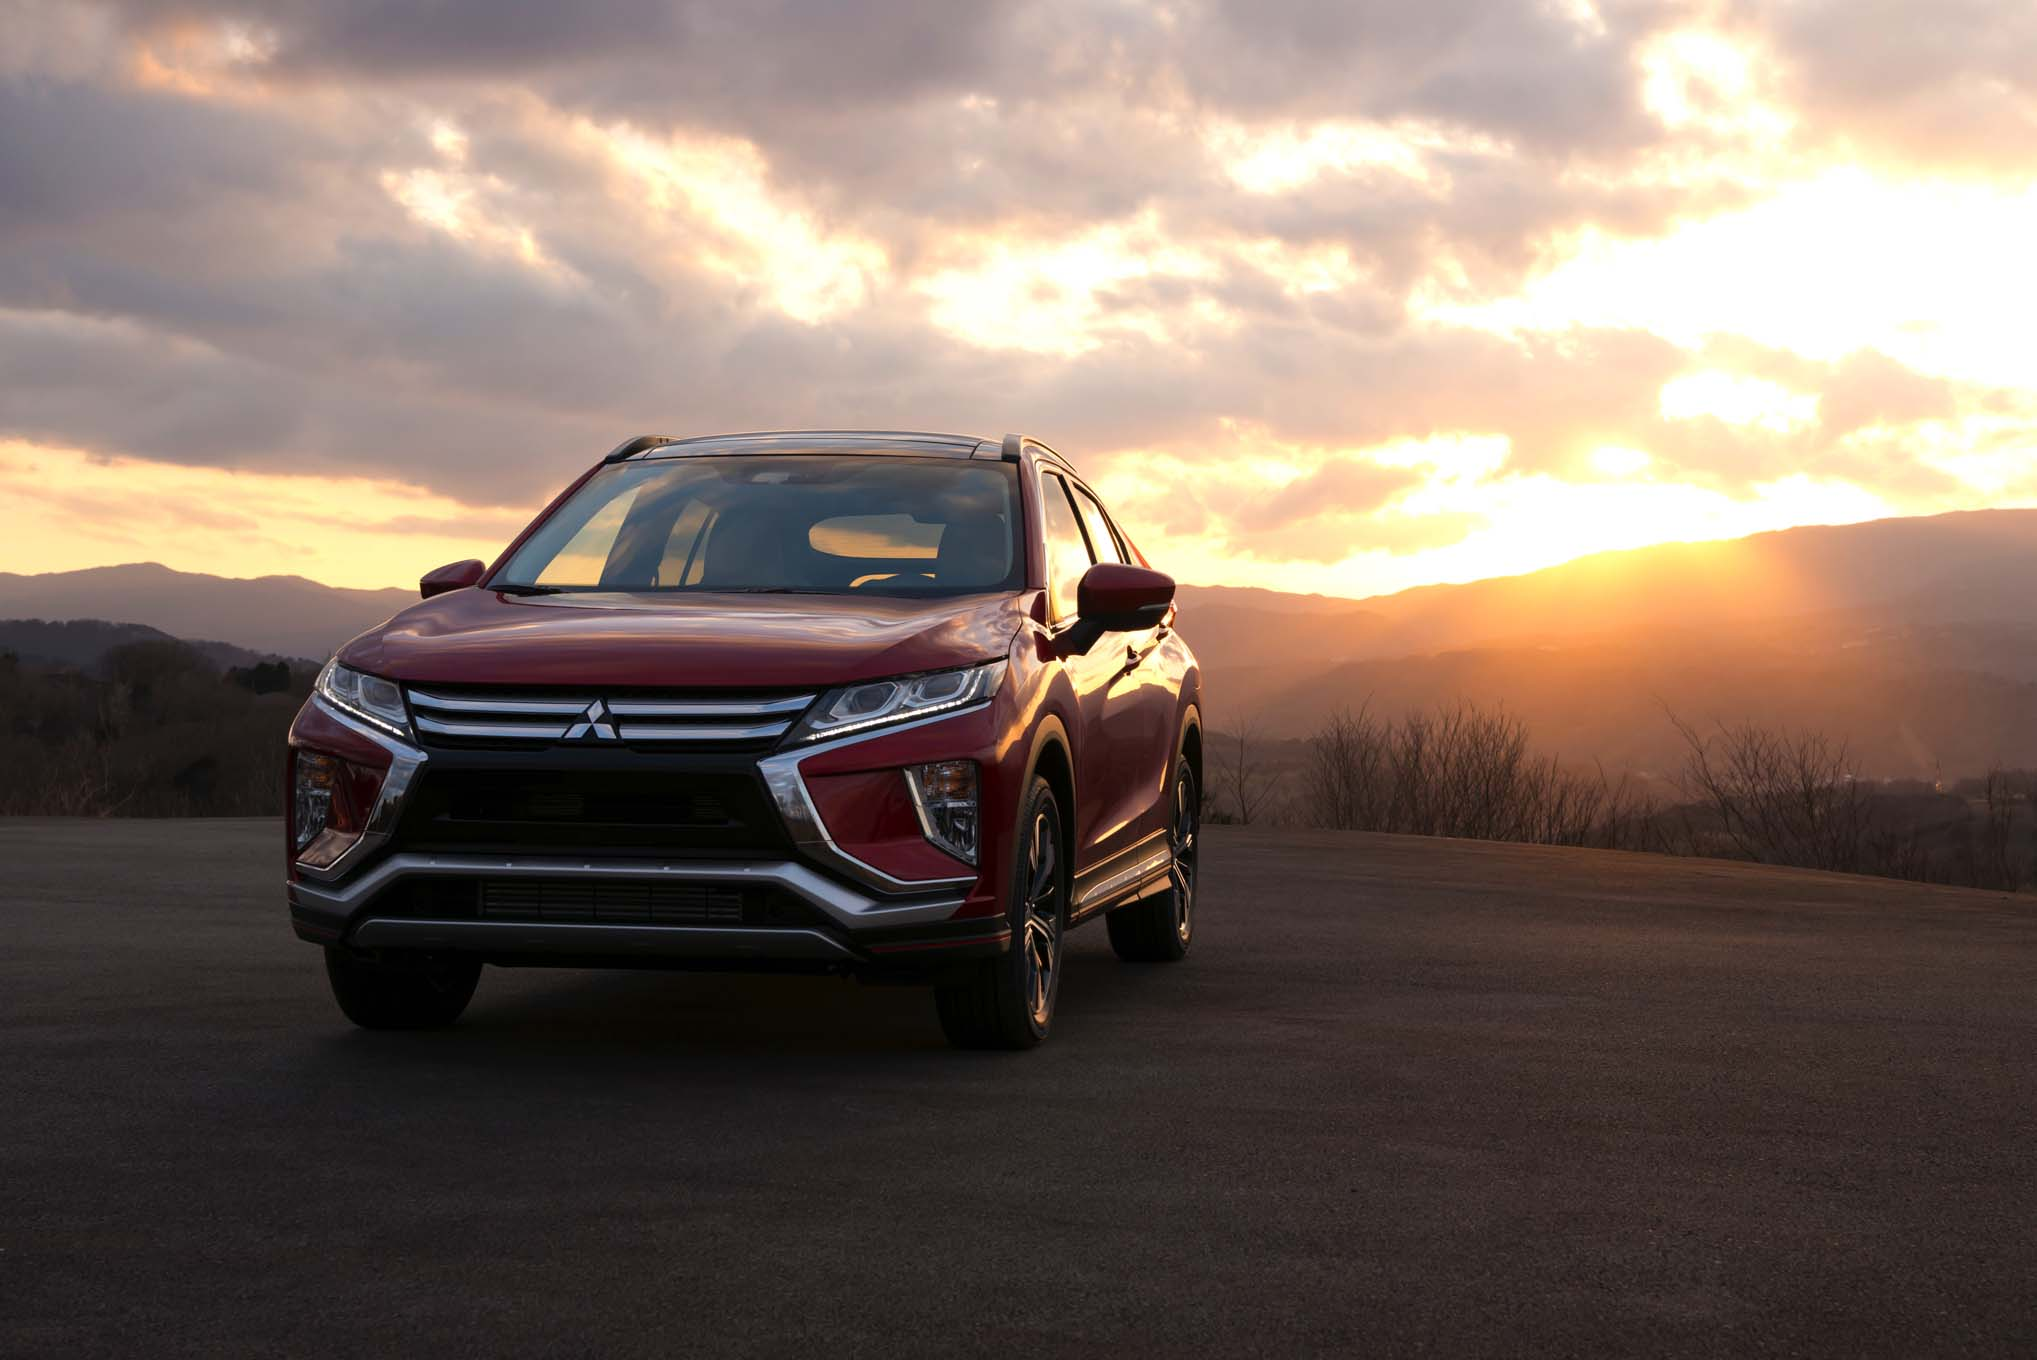 2018 Mitsubishi Eclipse Cross Front End 03 1